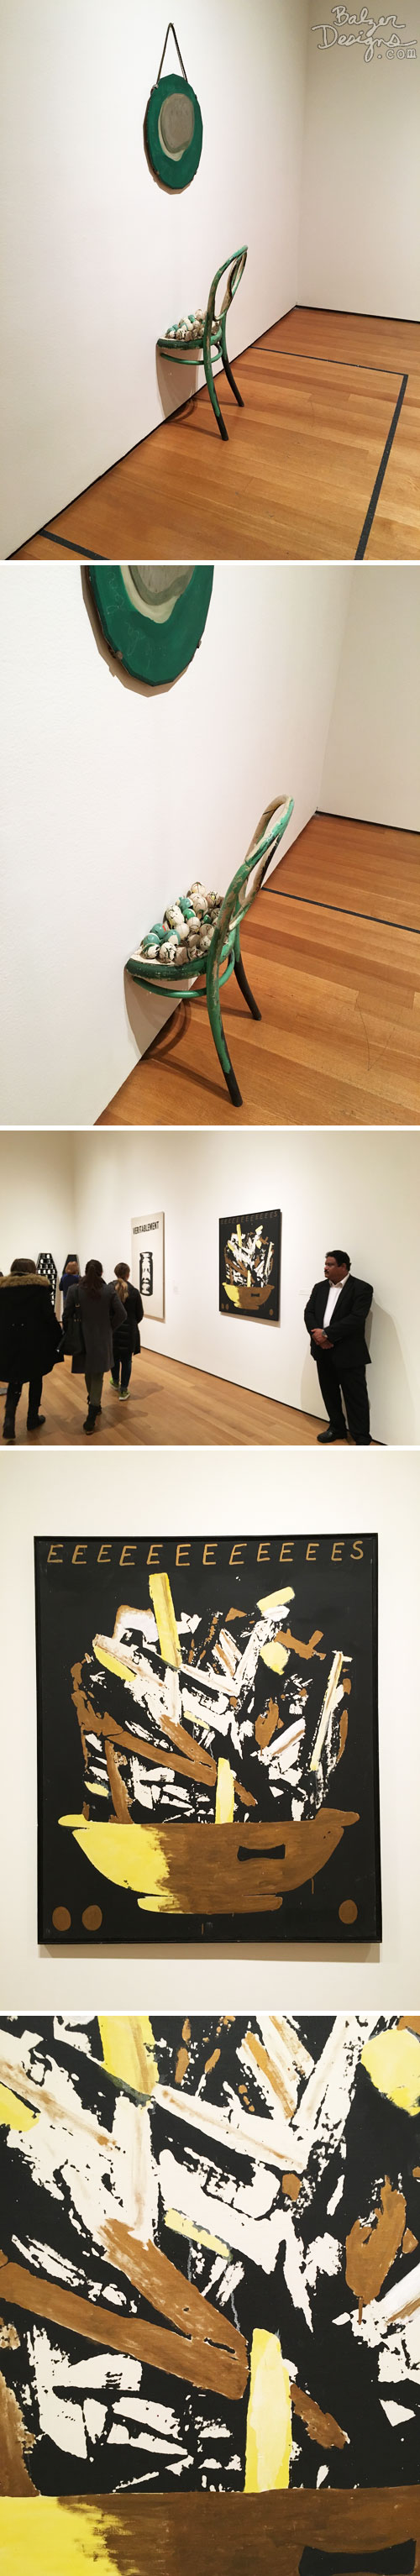 from the Balzer Designs Blog: MoMA in March